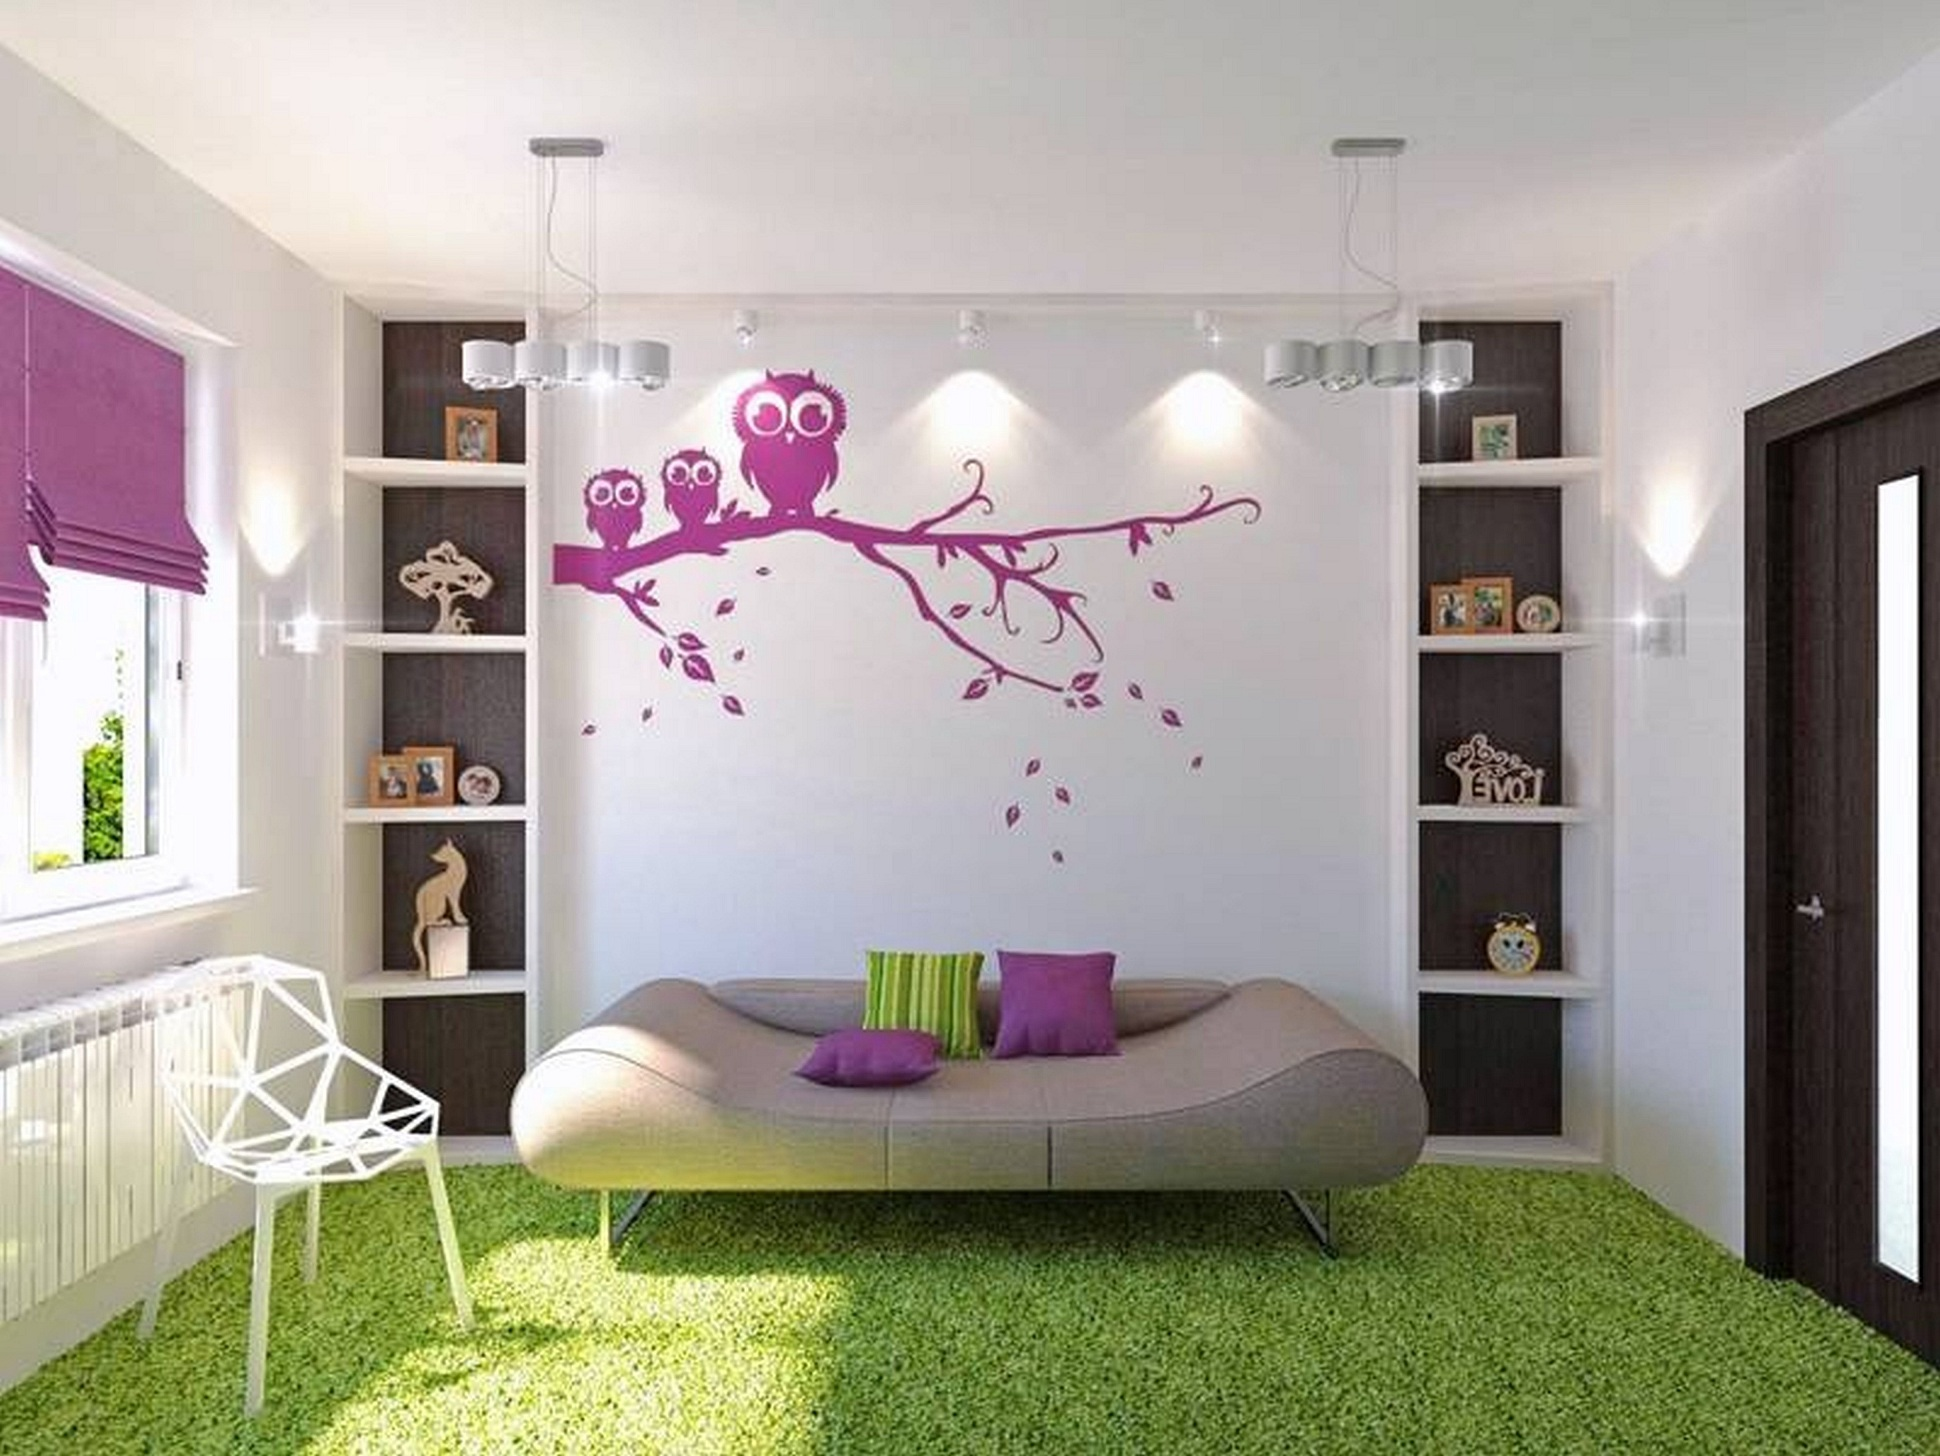 Cute Purple Owl Wall Mural Decorating Wide Teen Room Decor with Sofa Bed and White Shelves